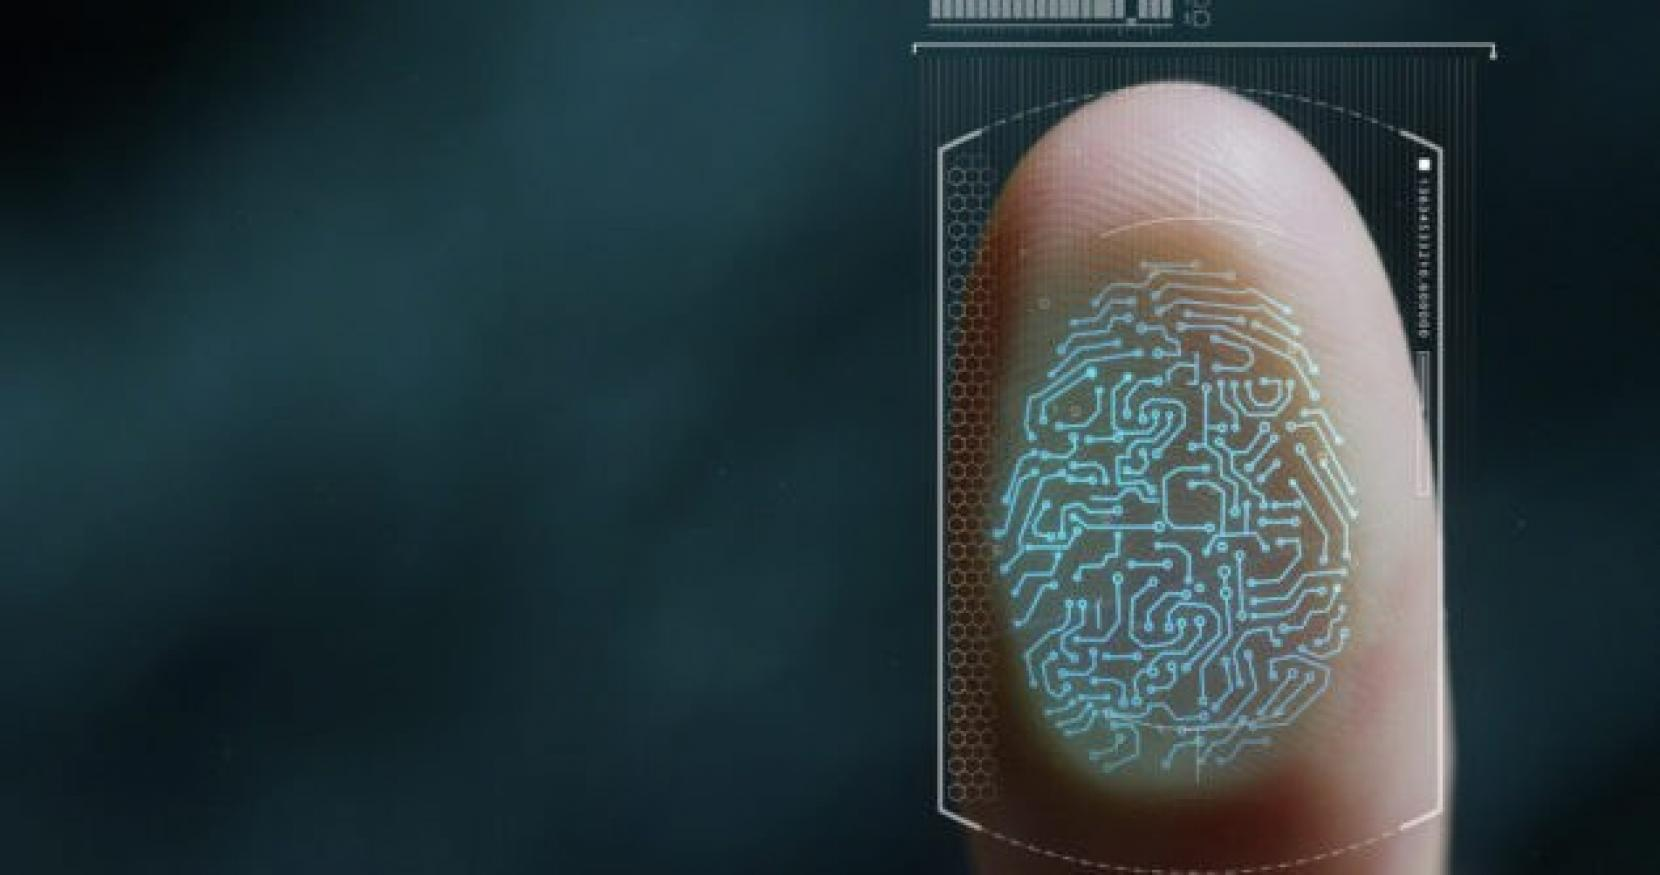 biometric acknowledgement frameworks, biometric acknowledgement, Biometric Access Control, biometric authentication, mfa using biometric, fingerprint scanner for the law enforcement, biometric for the law enforcemen, fingerprint access control system, fingerprint access control